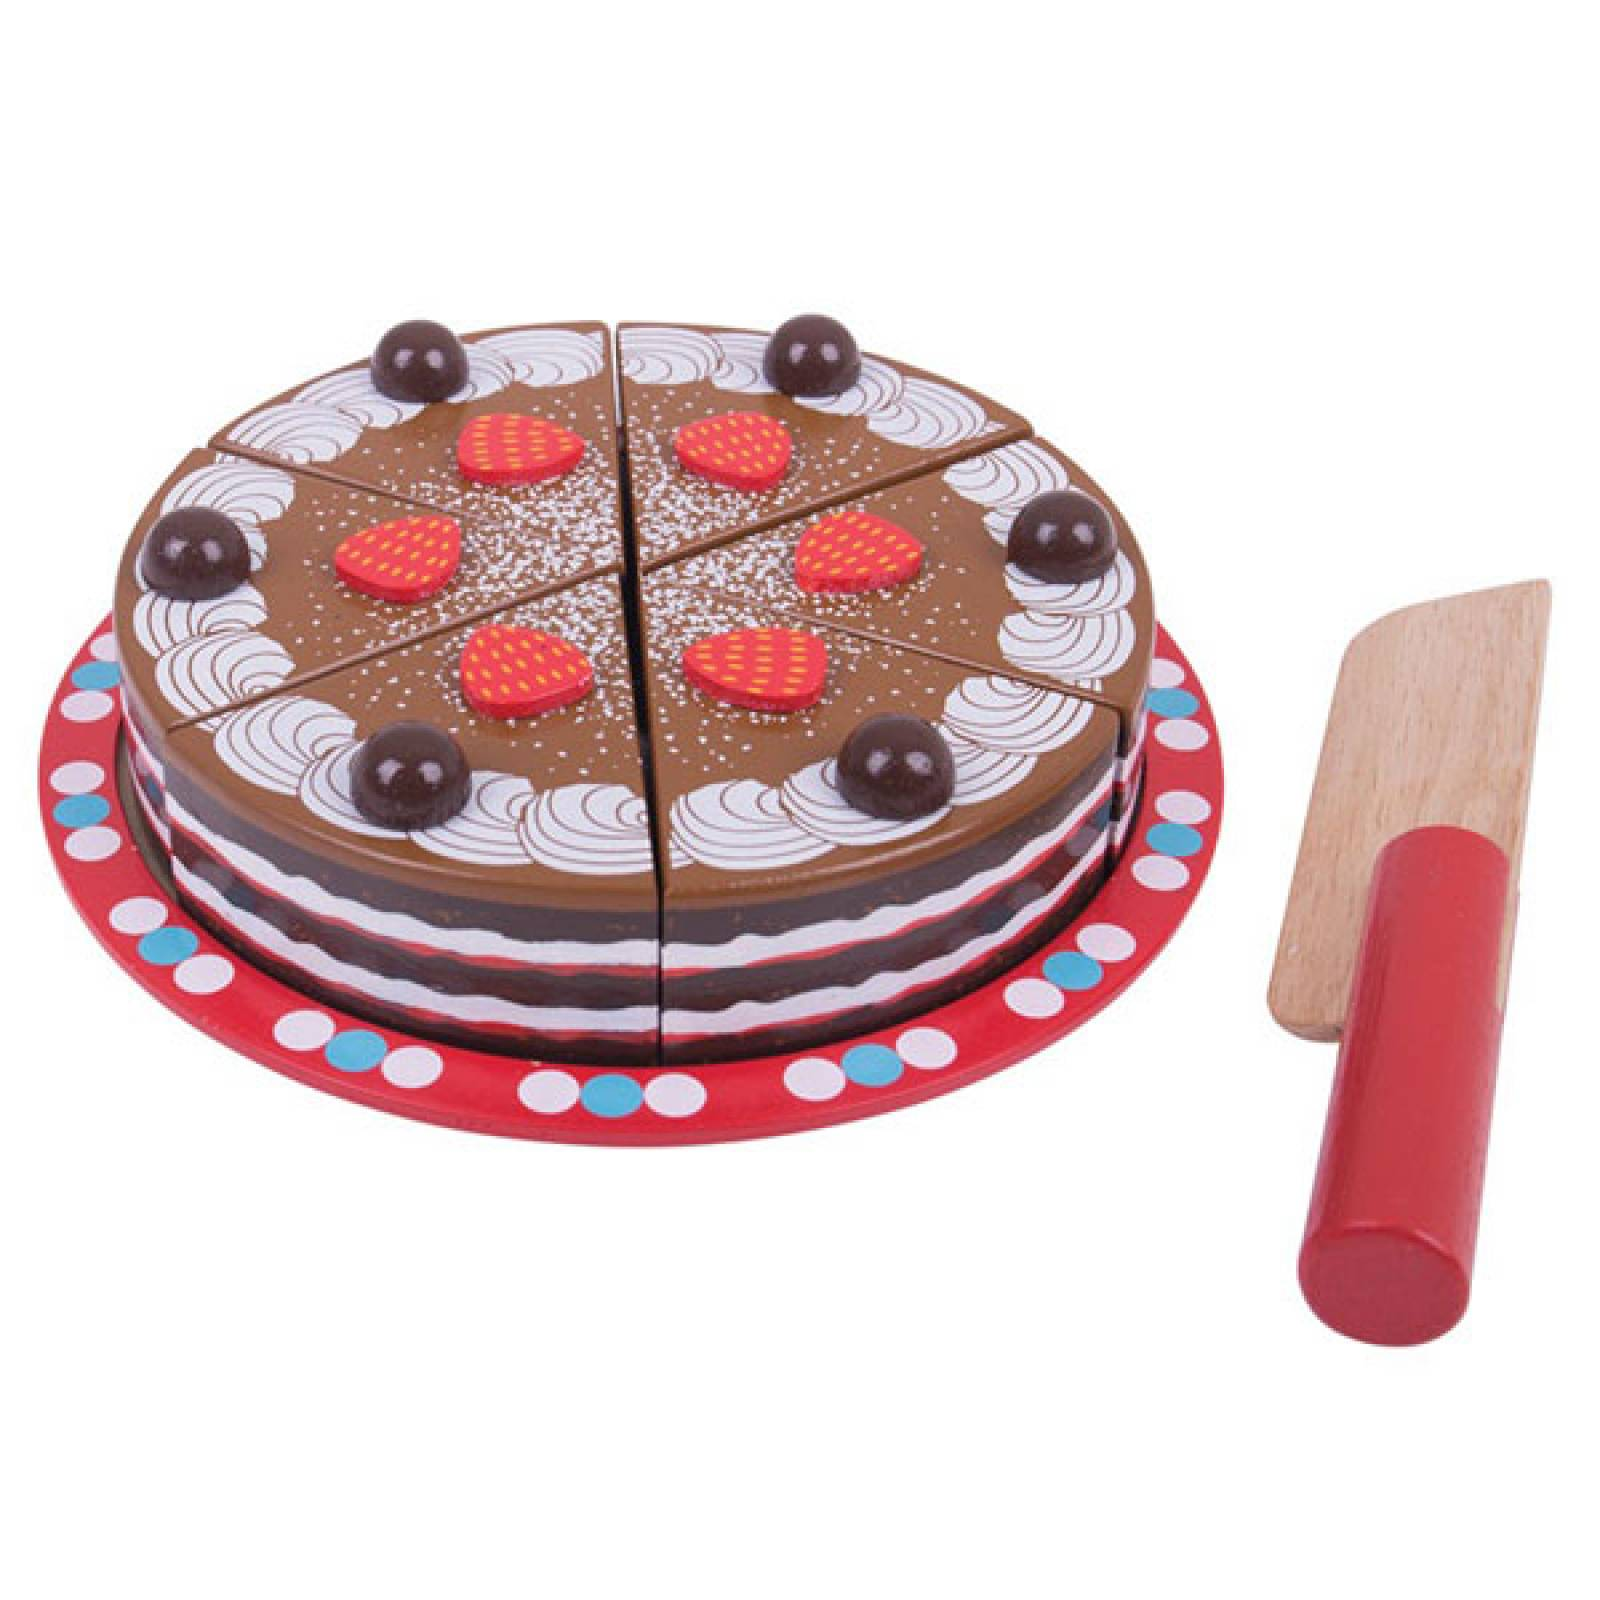 Chocolate Party Cake Wooden Play Food Set 3+